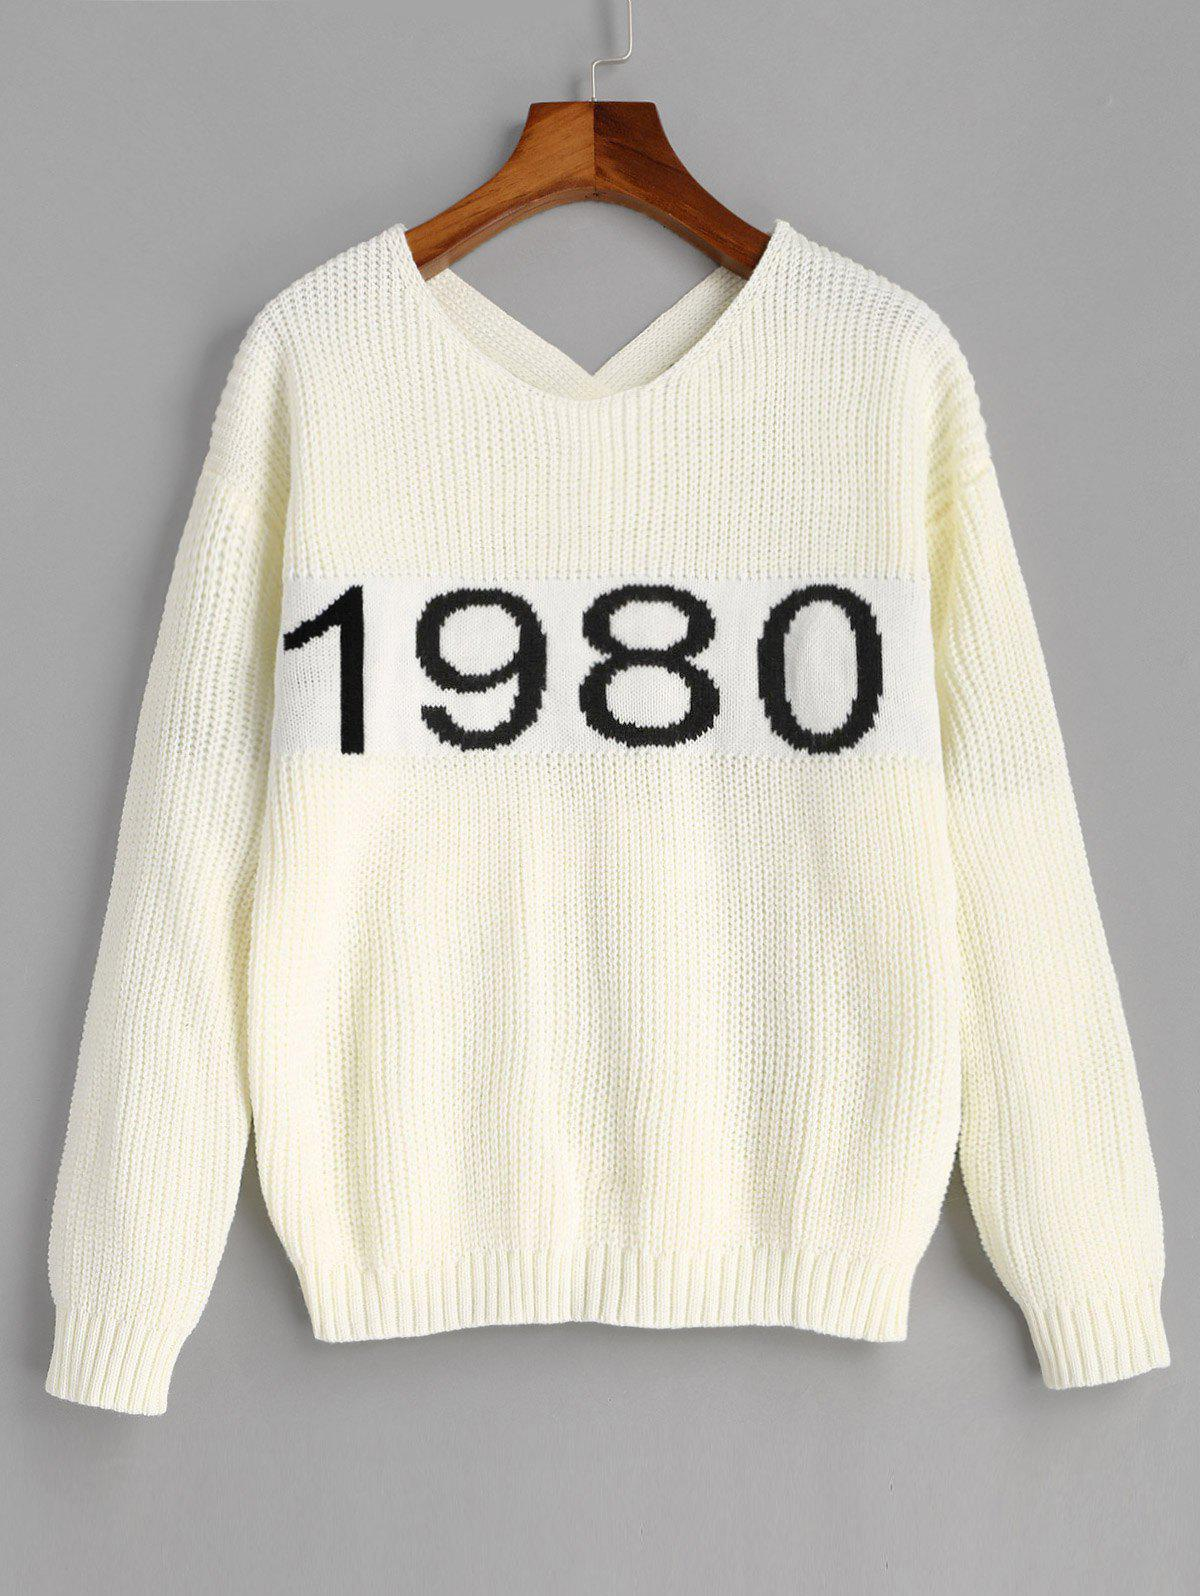 Number Graphic Criss Cross Sweater